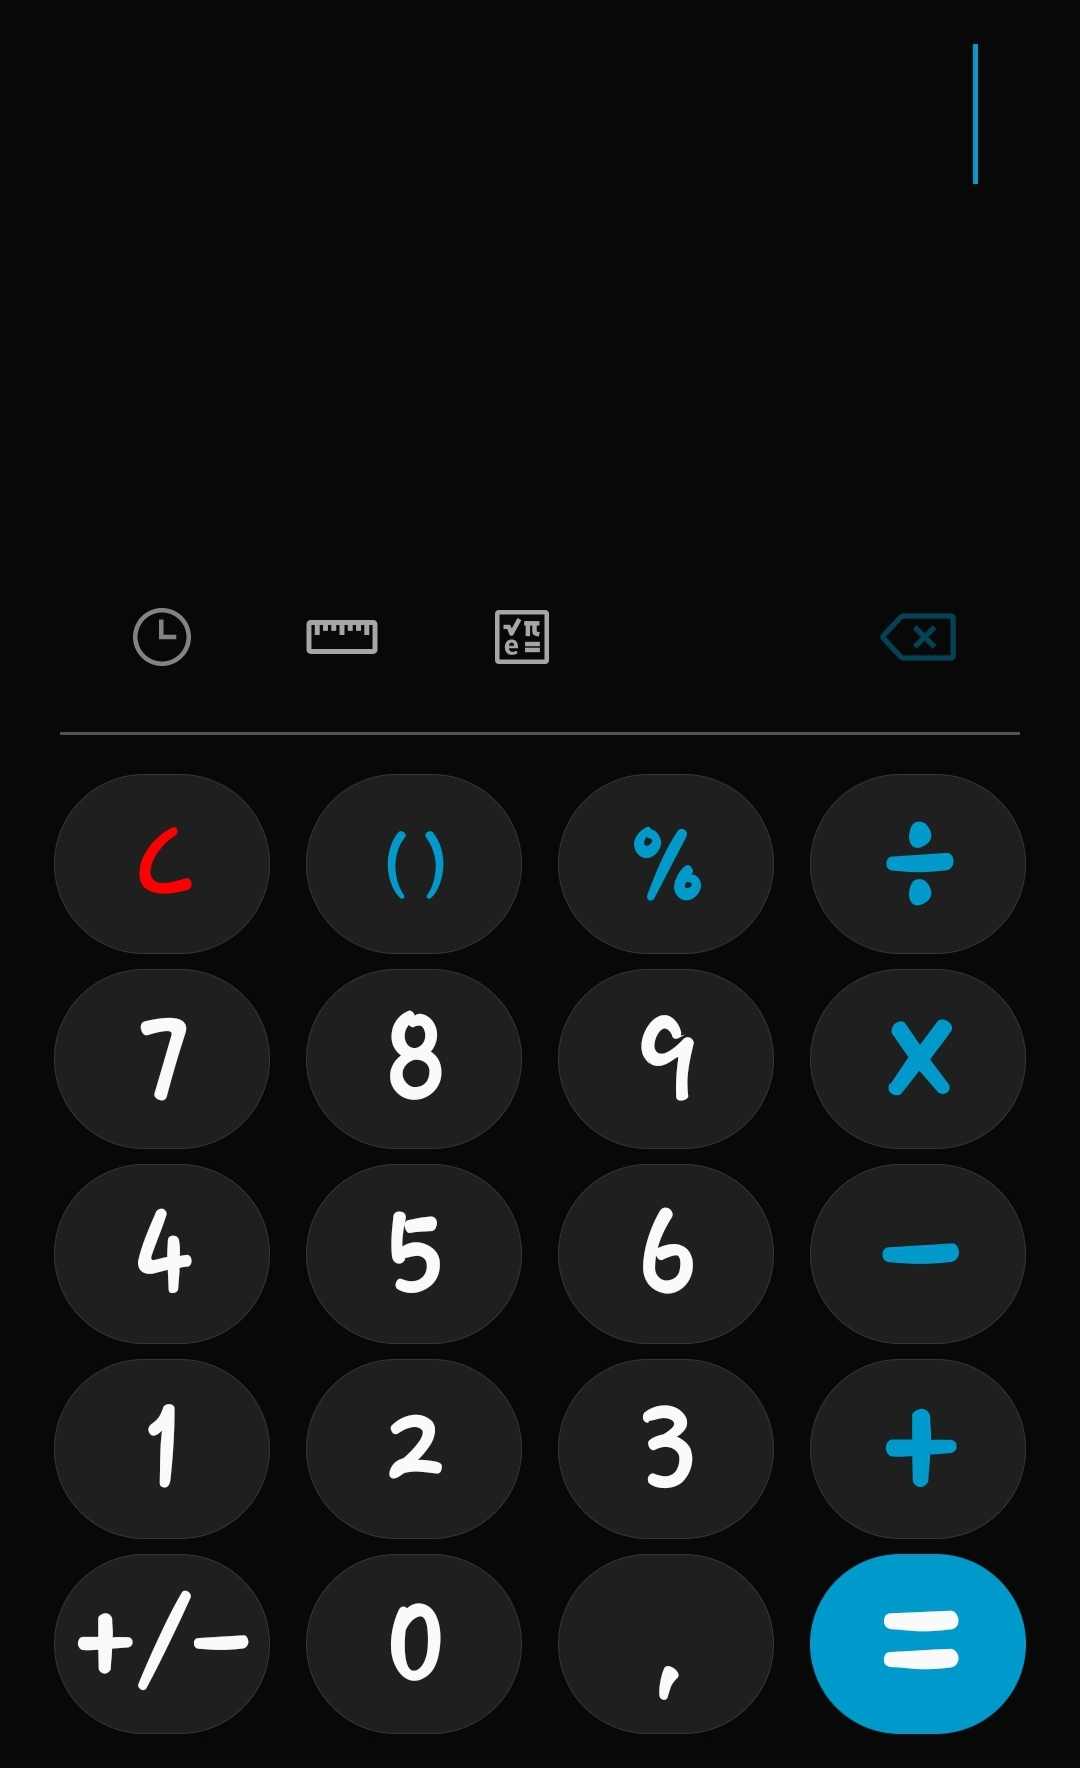 screenshot_20200329-210033_calculator-jpg.6583